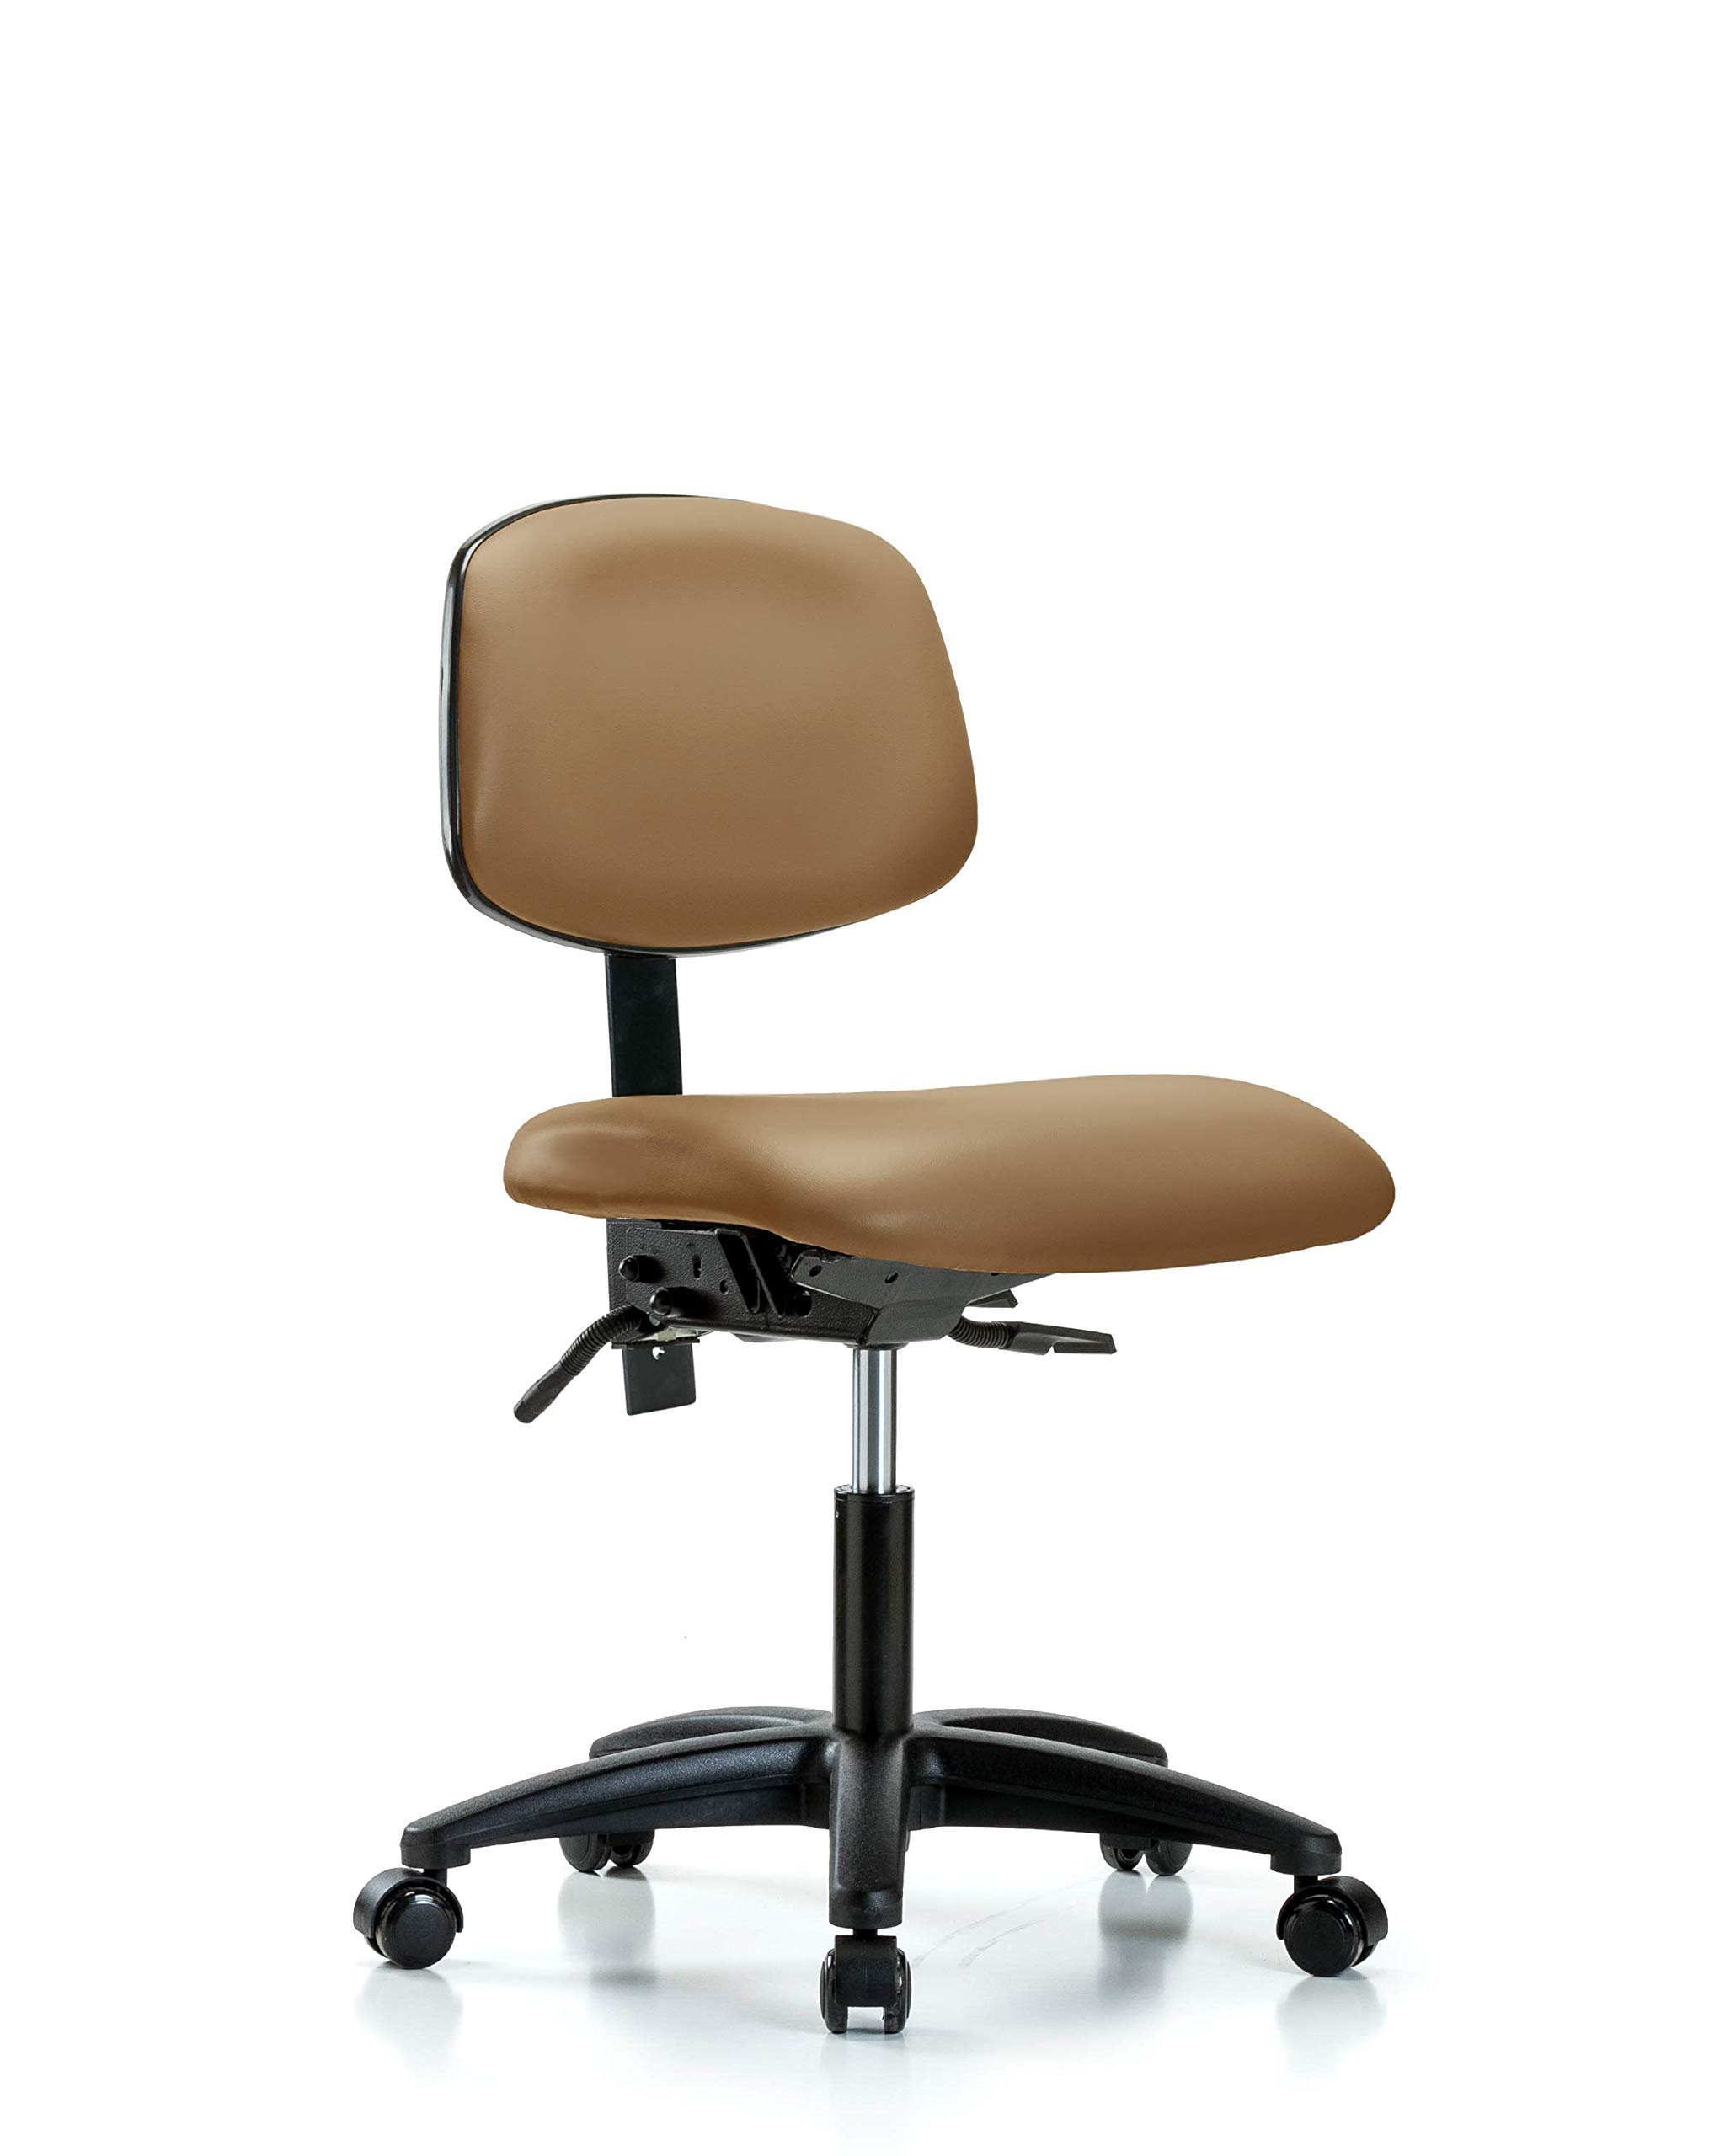 LabTech Seating LT44212 Desk Height Chair, Vinyl, Nylon Base - Casters, Taupe